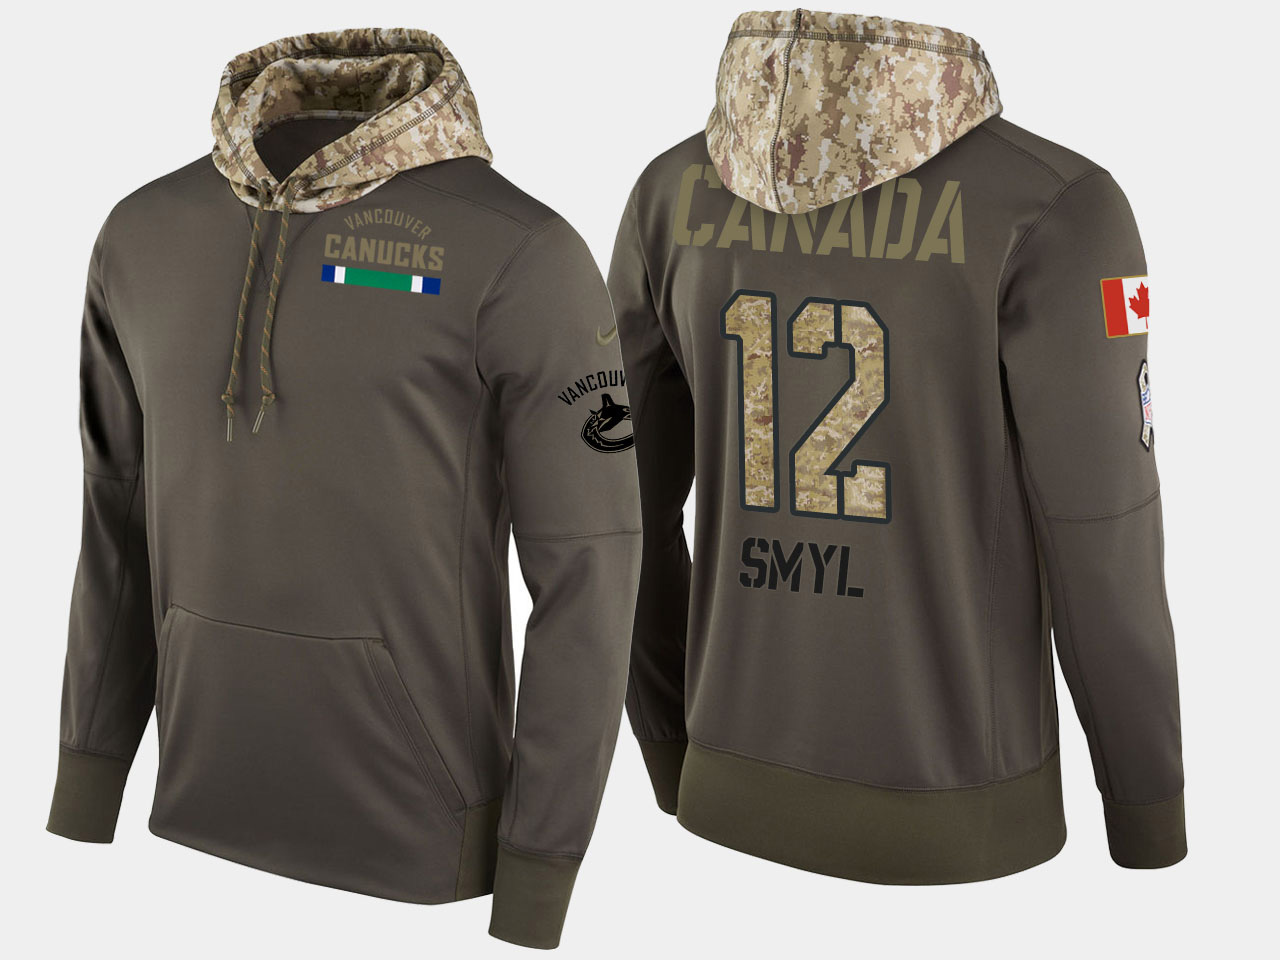 Nike Canucks 12 Stan Smyl Retired Olive Salute To Service Pullover Hoodie